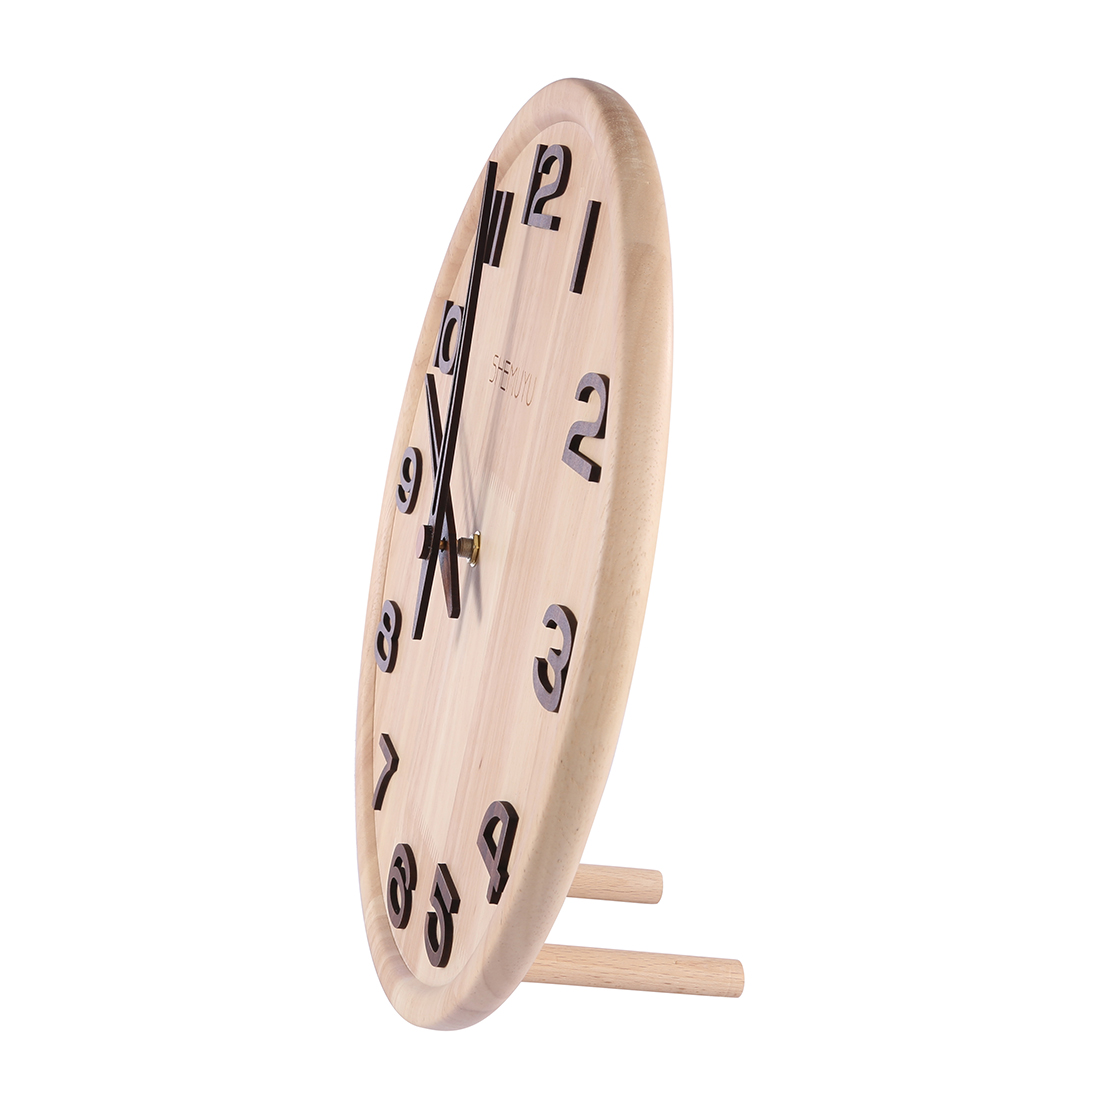 New Hot 14 Inches Nordic Mute Wall Clock Creative Solid Wood Table Desk Clock for Office Home Decor with Round Log Numbers Type